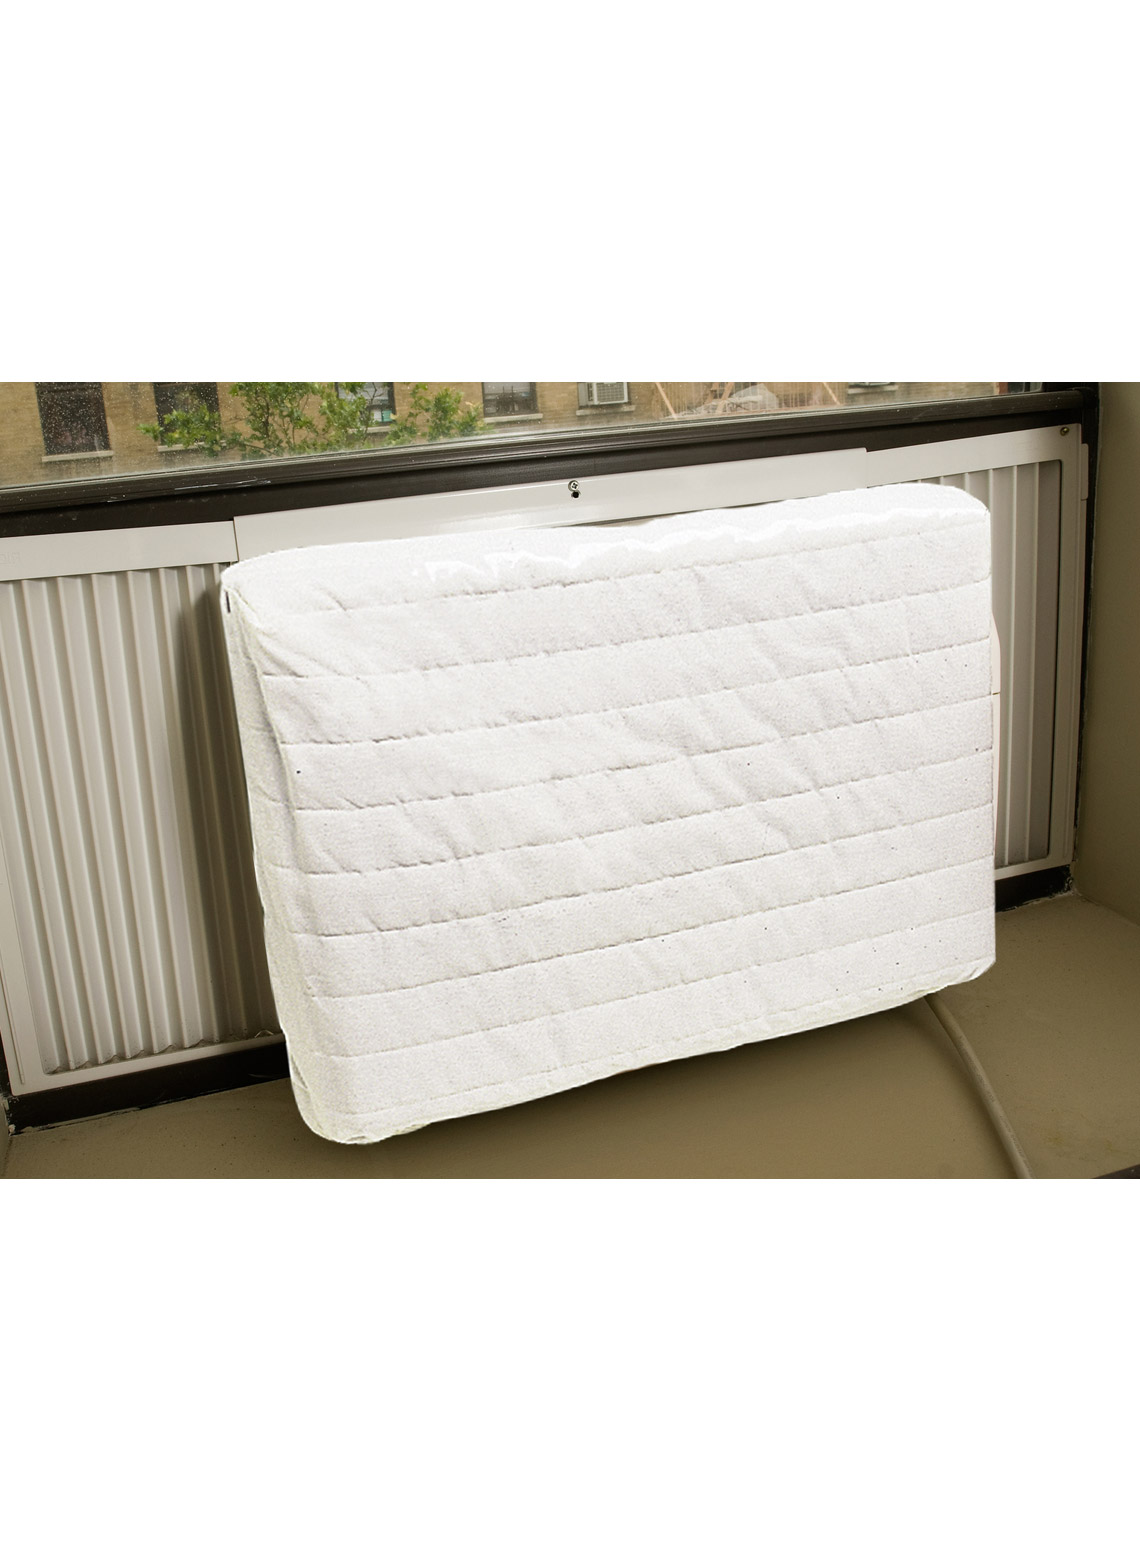 Quilted Indoor Air Conditioner Cover Carolwrightgifts Com